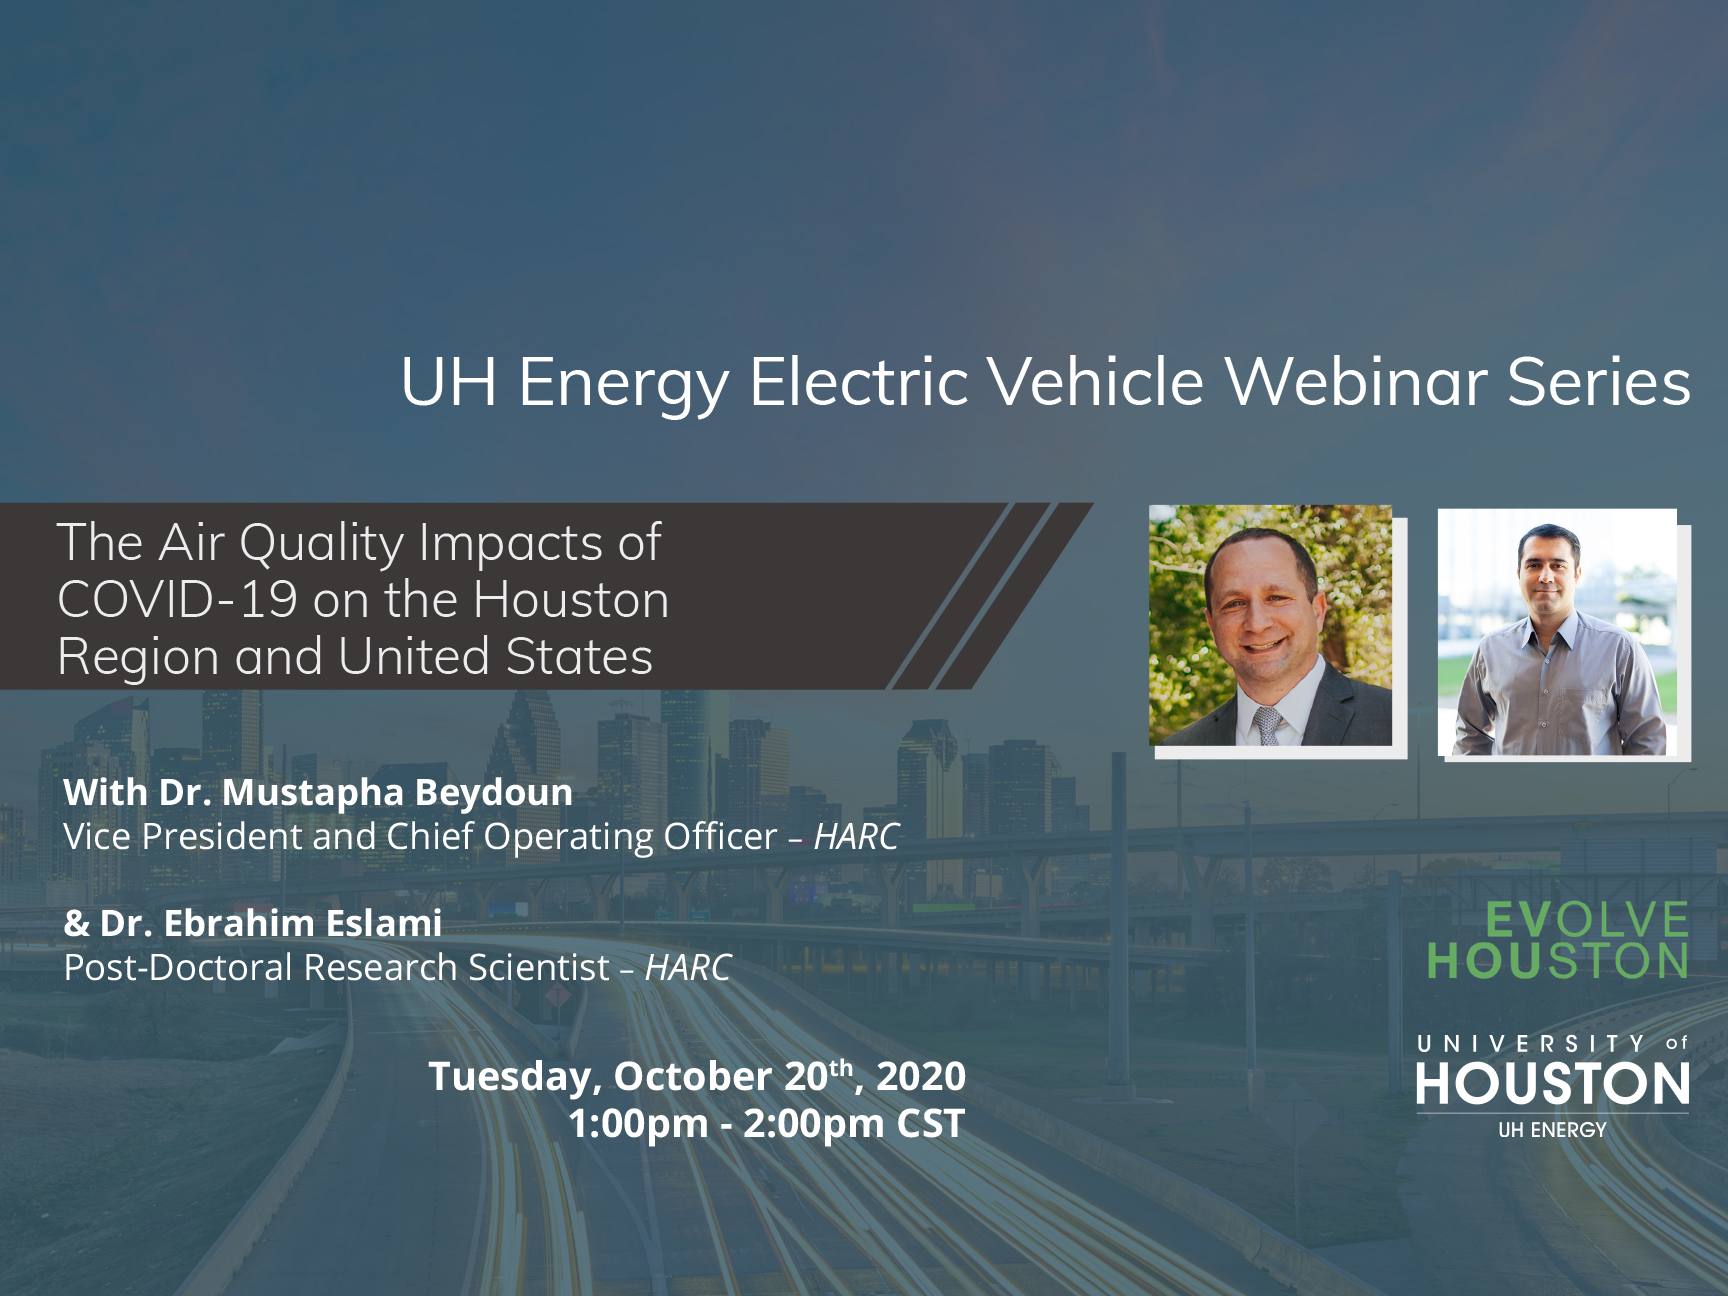 UH Energy Electric Vehicle Webinar: The Air Quality Impacts of COVID-19 Image